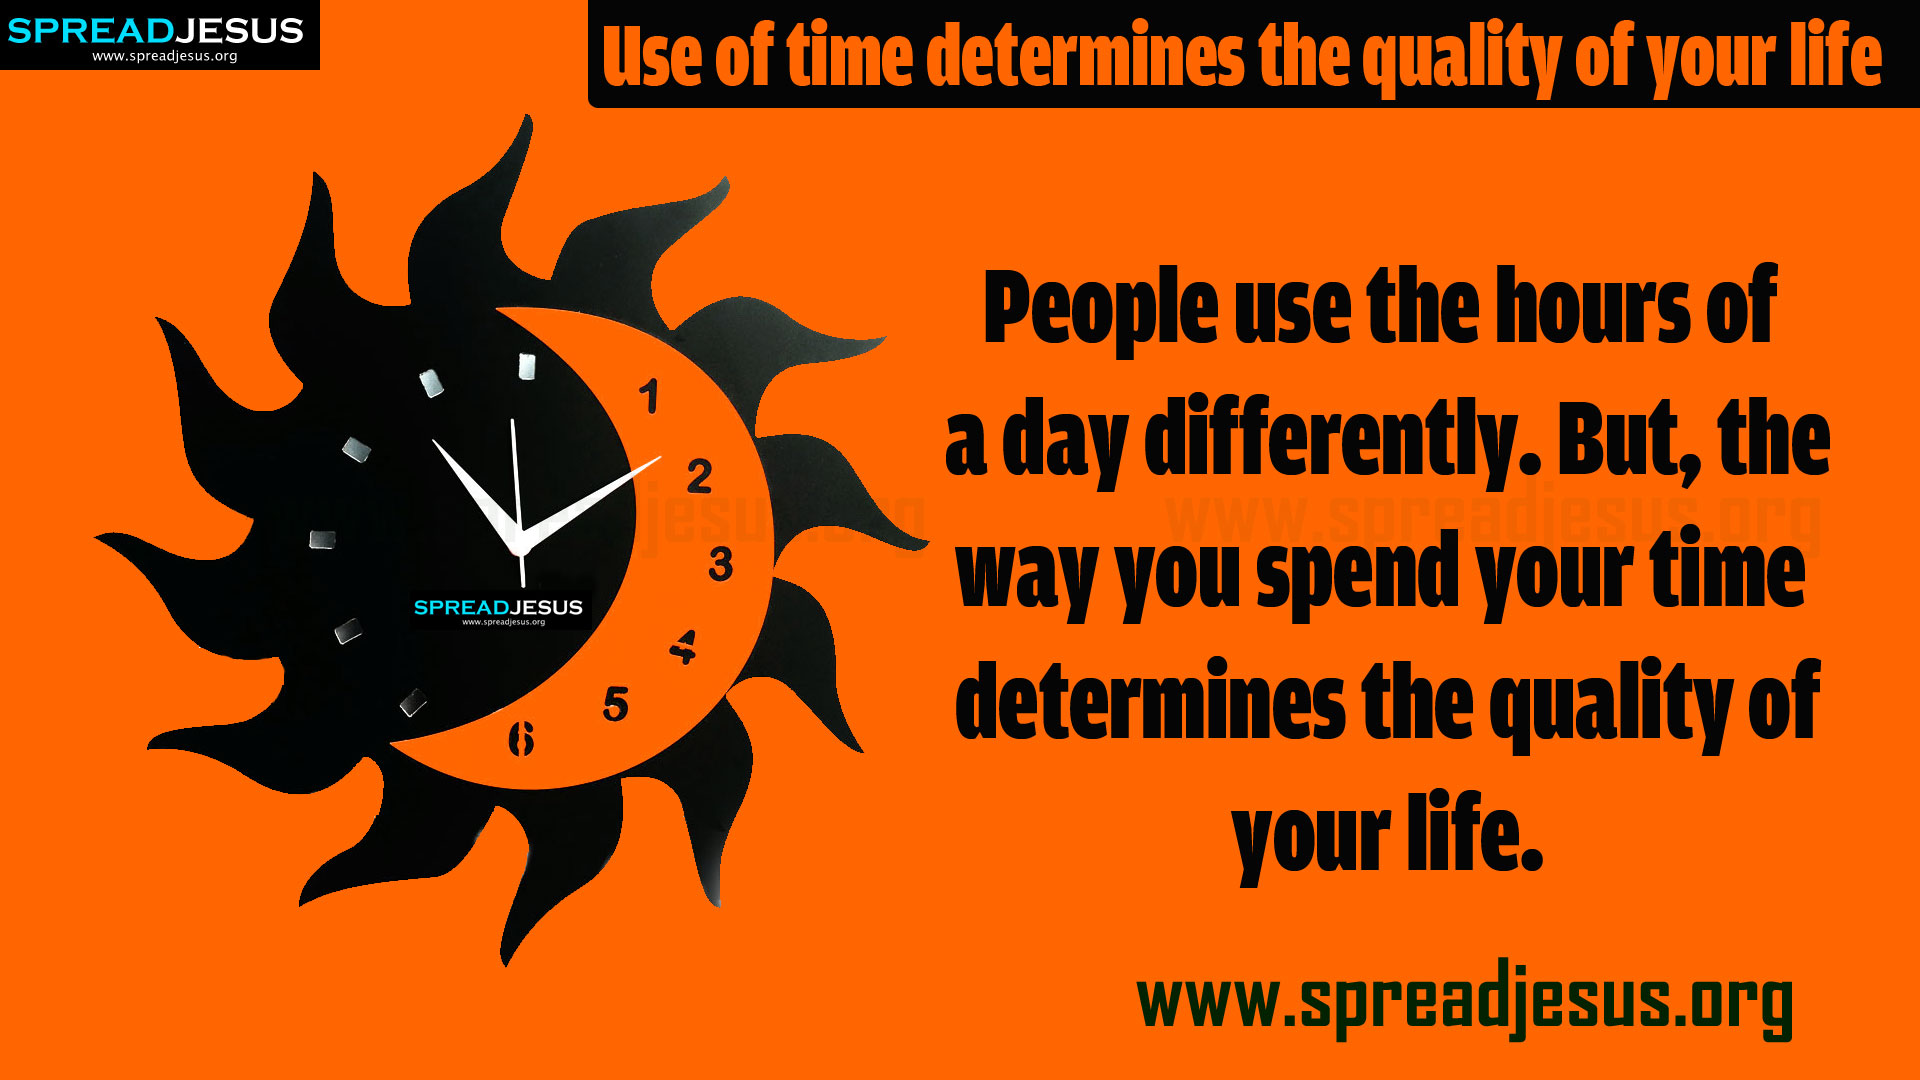 TIME MANAGEMENT QUOTES HD-WALLPAPERS FREE DOWNLOAD-Use of time determines the quality of your life — People use the hours of a day differently.